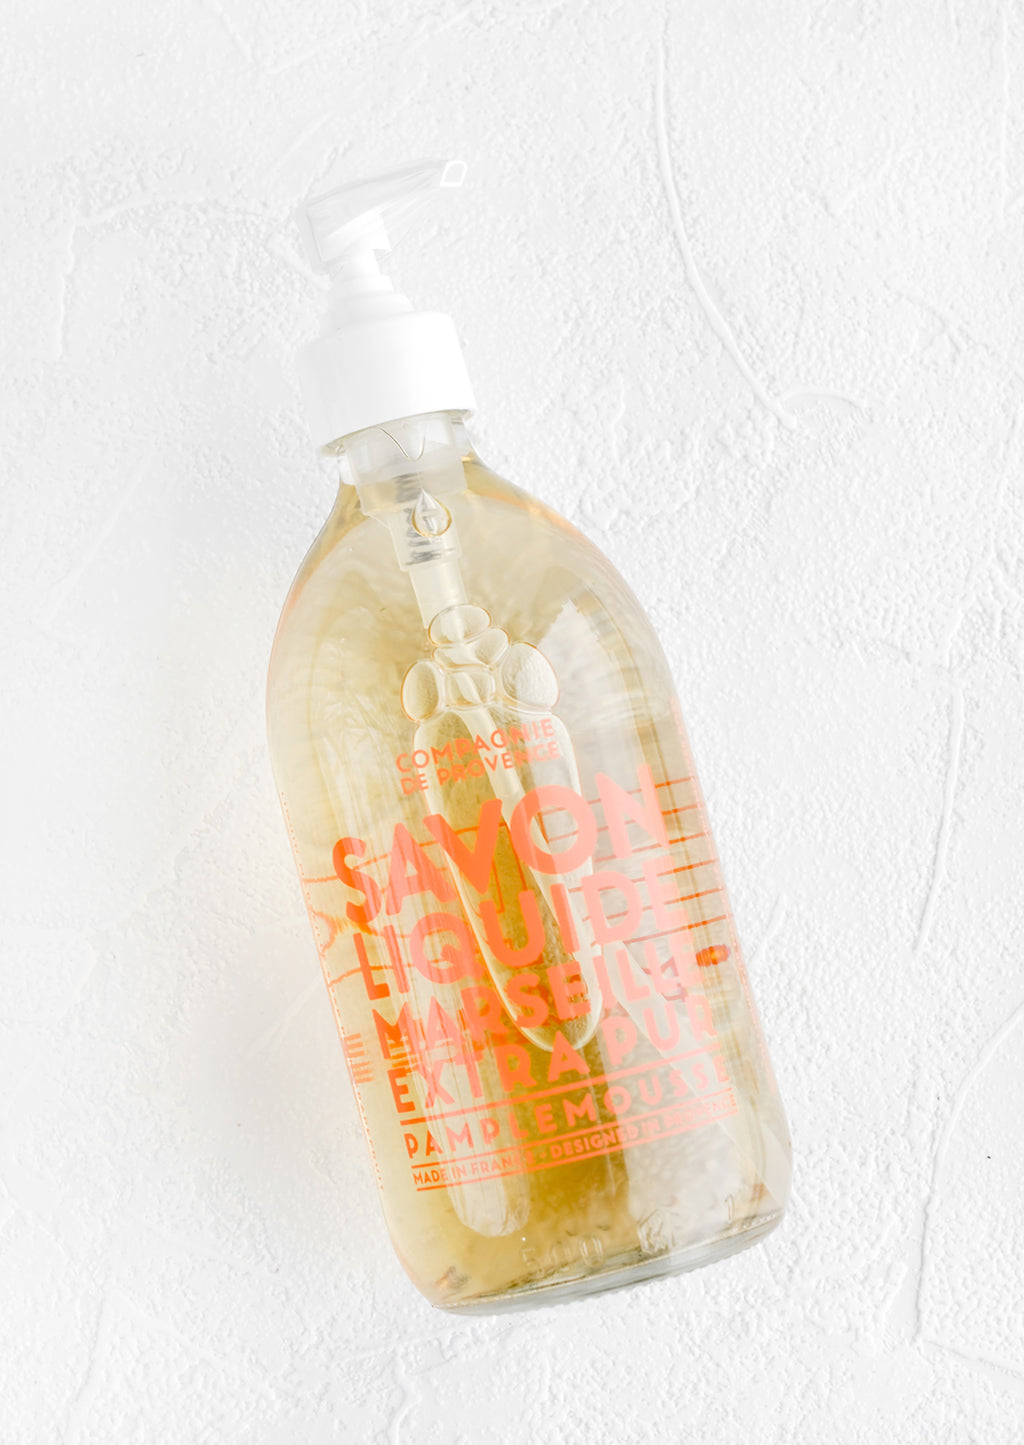 Grapefruit: A clear glass soap bottle with bold orange text printed on bottle